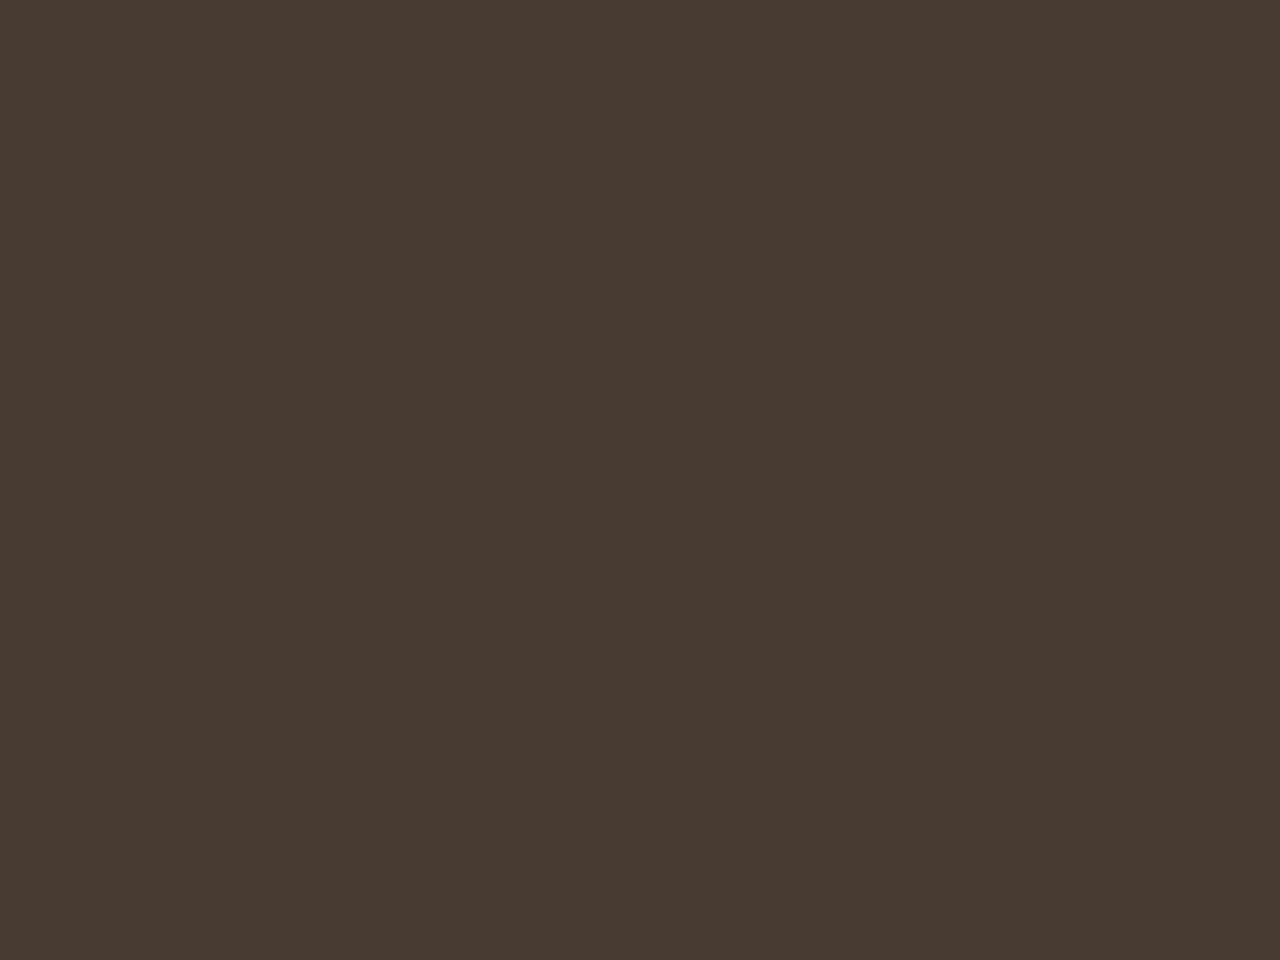 1280x960 Dark Taupe Solid Color Background